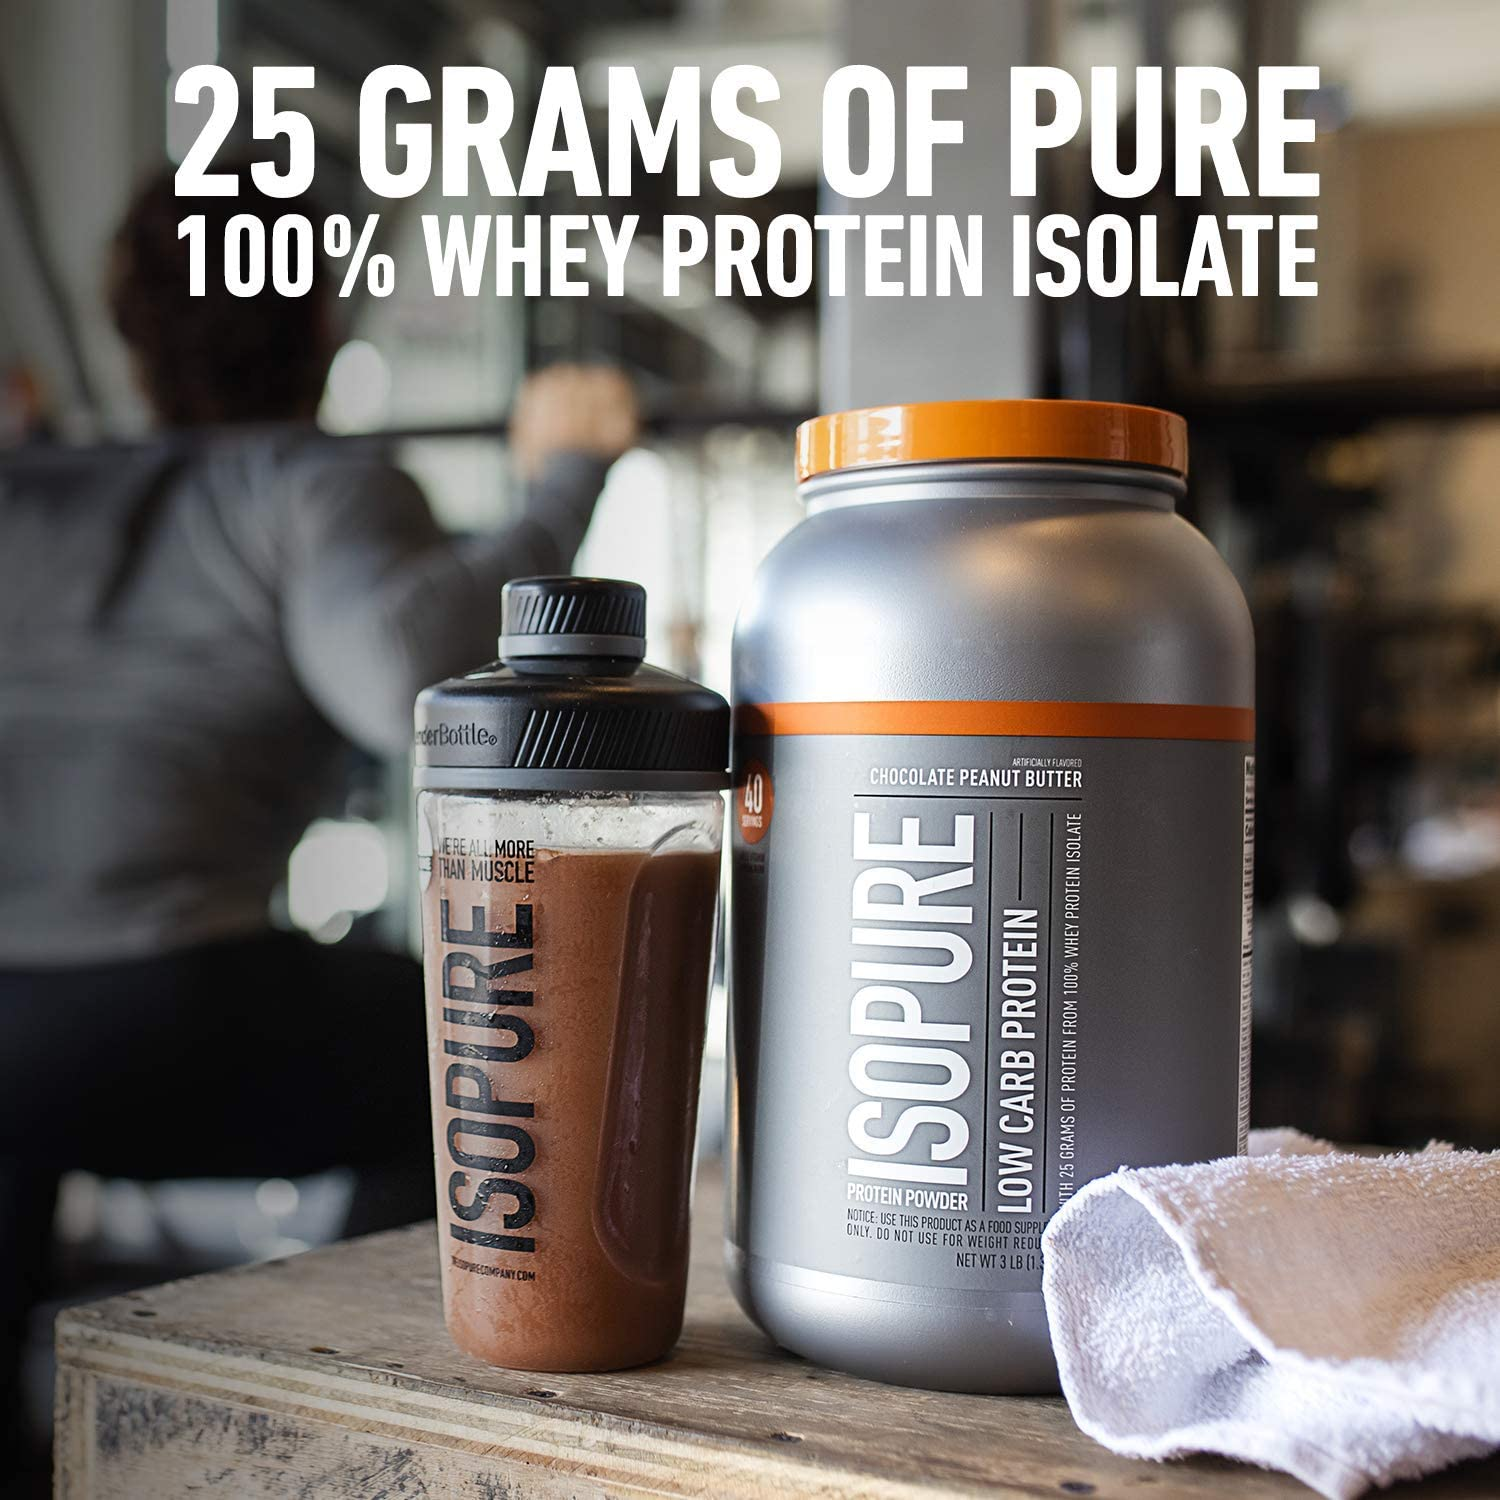 Isopure Zero Carb, Vitamin C and Zinc for Immune Support,: Health & Personal Care